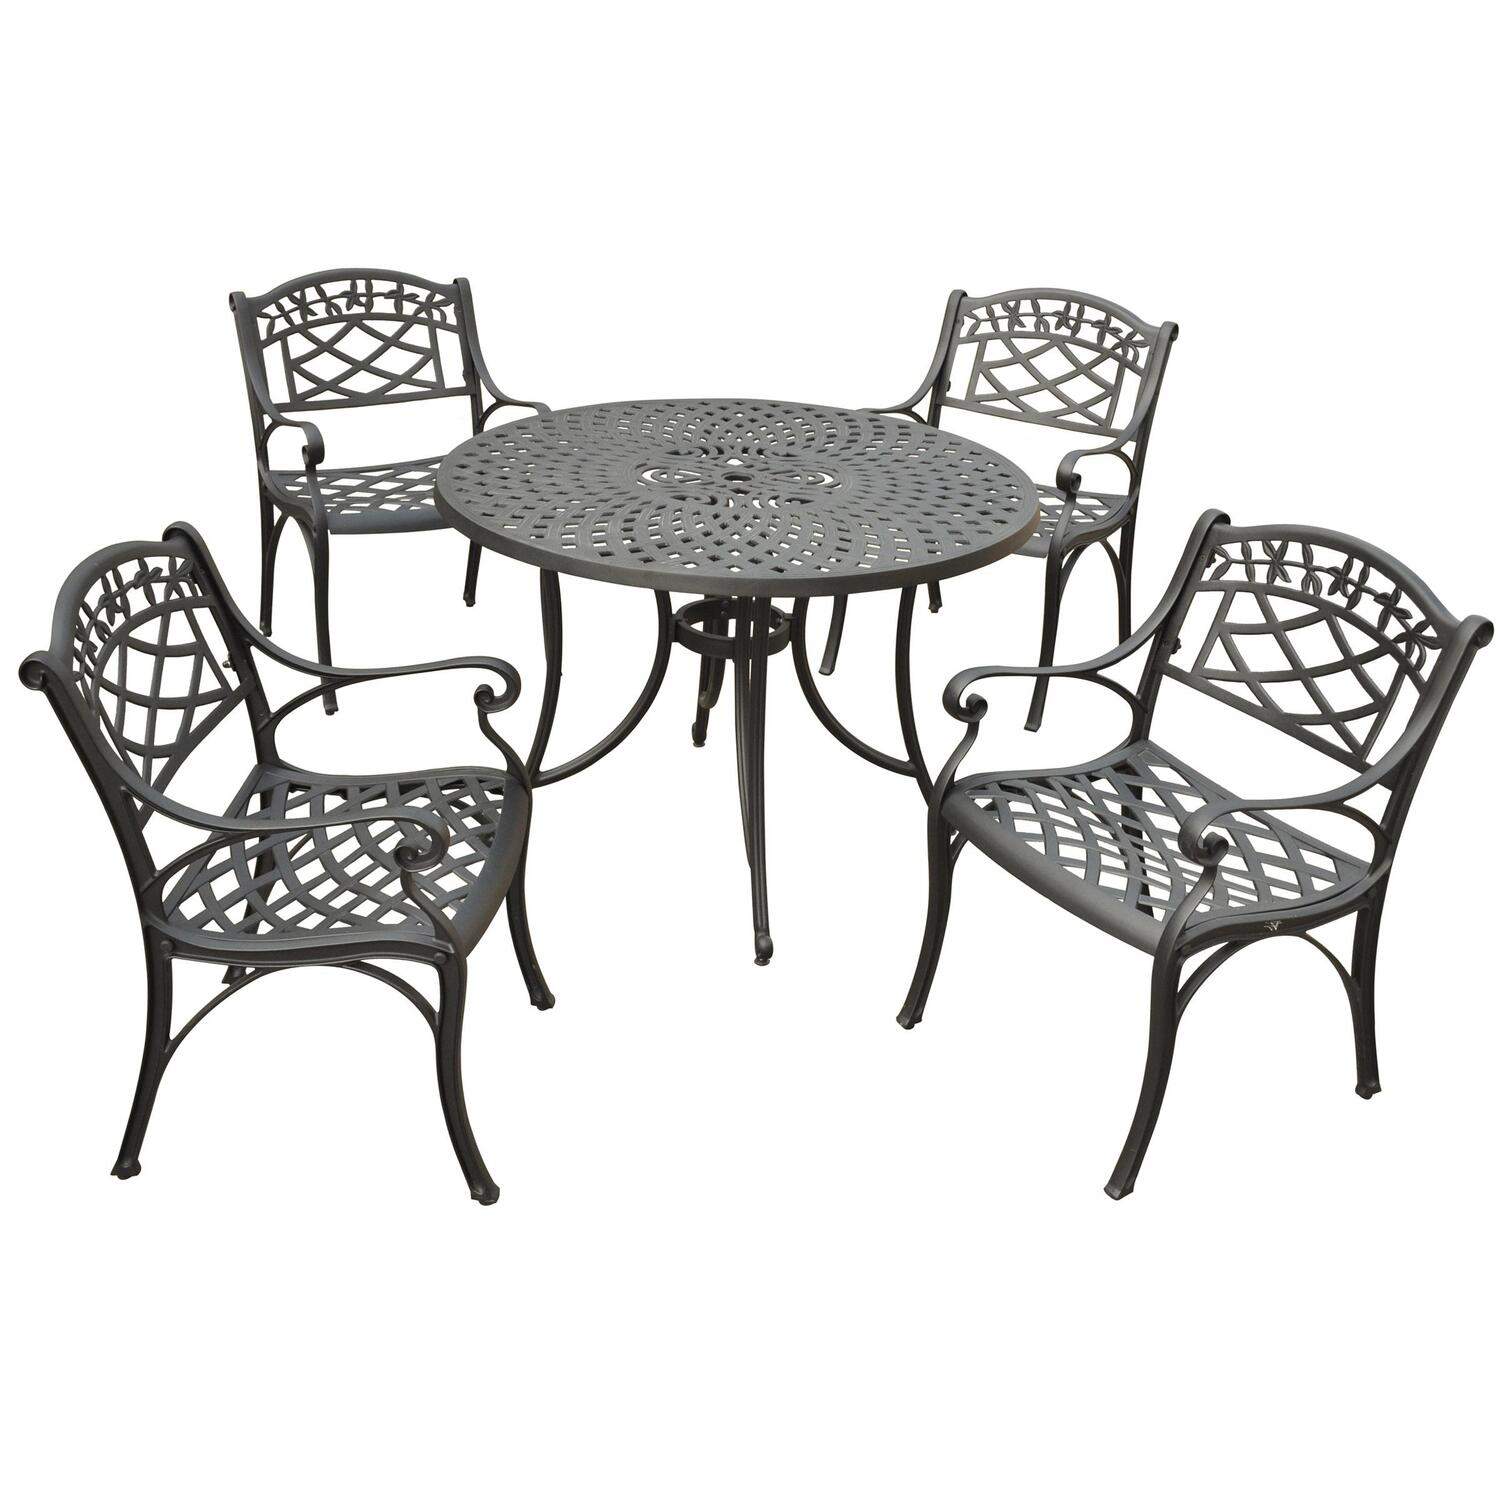 Crosley Sedona 42 Five Piece Cast Aluminum Outdoor Dining Set With Arm Chairs In Black Finish 1036 35 Ojcommerce